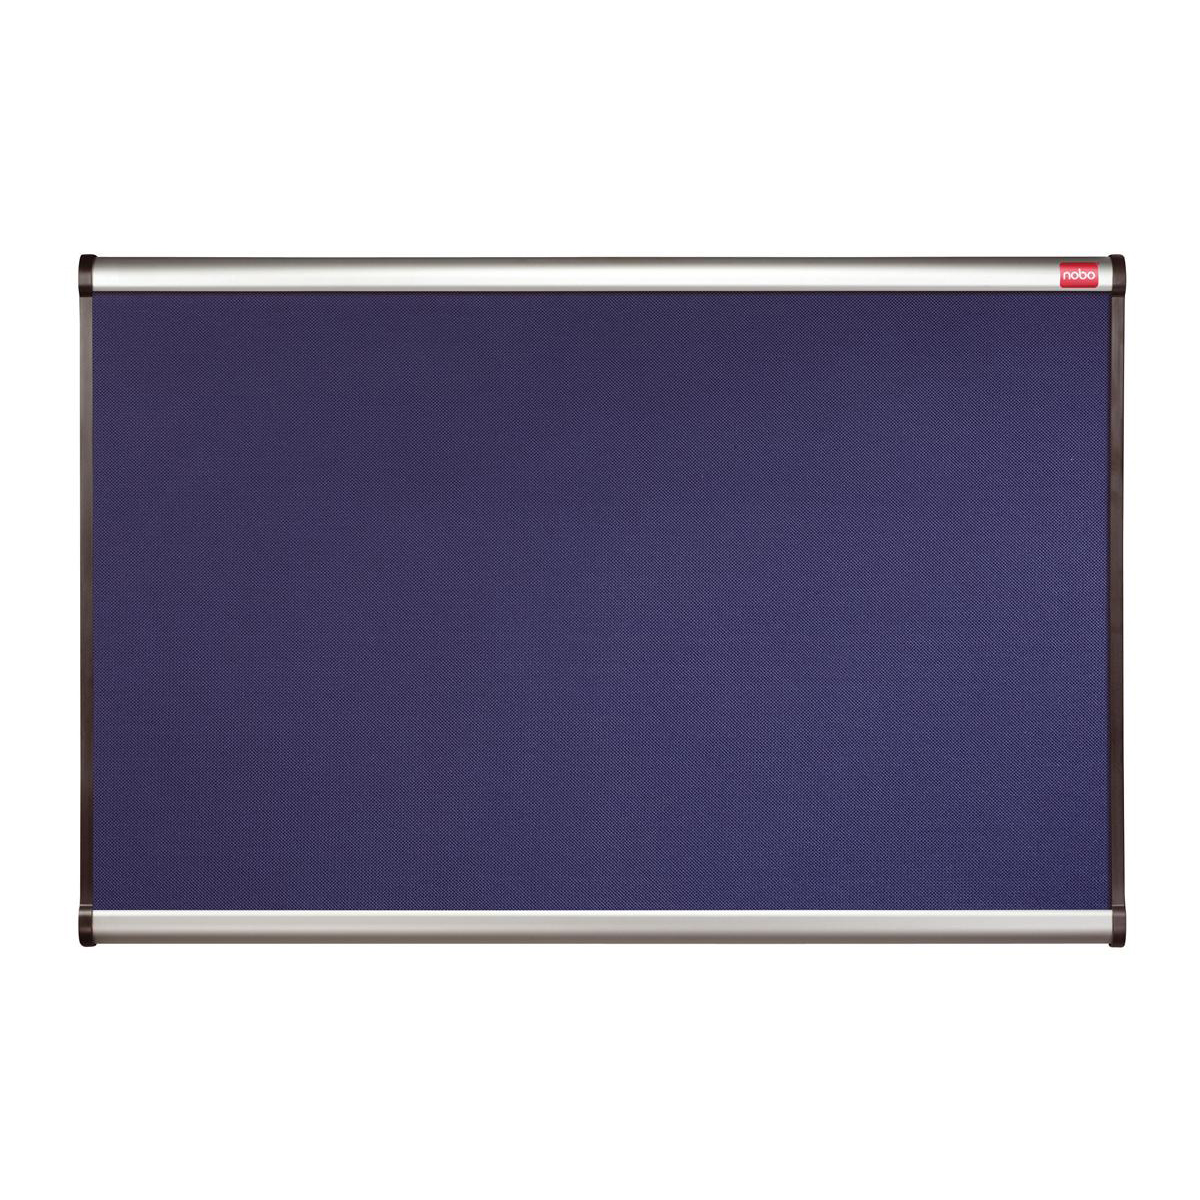 Nobo Prestige Noticeboard Diamond Mesh with Aluminium Finish W1200xH900mm Blue Ref QBPM1290B